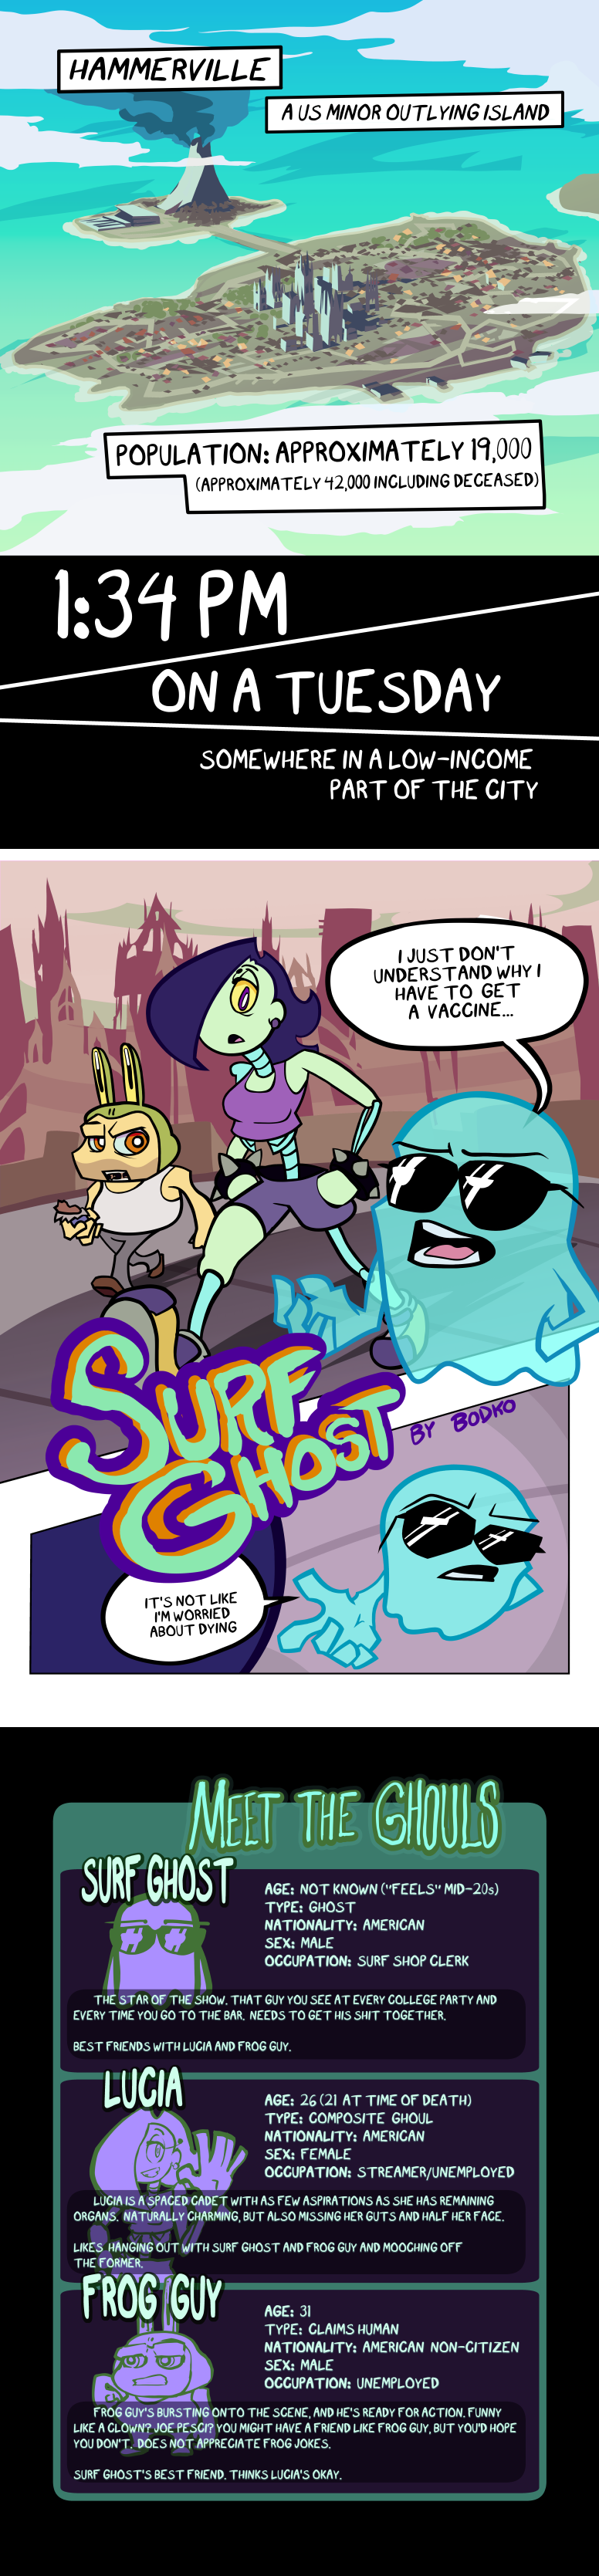 Surf Ghost page 1 + 2